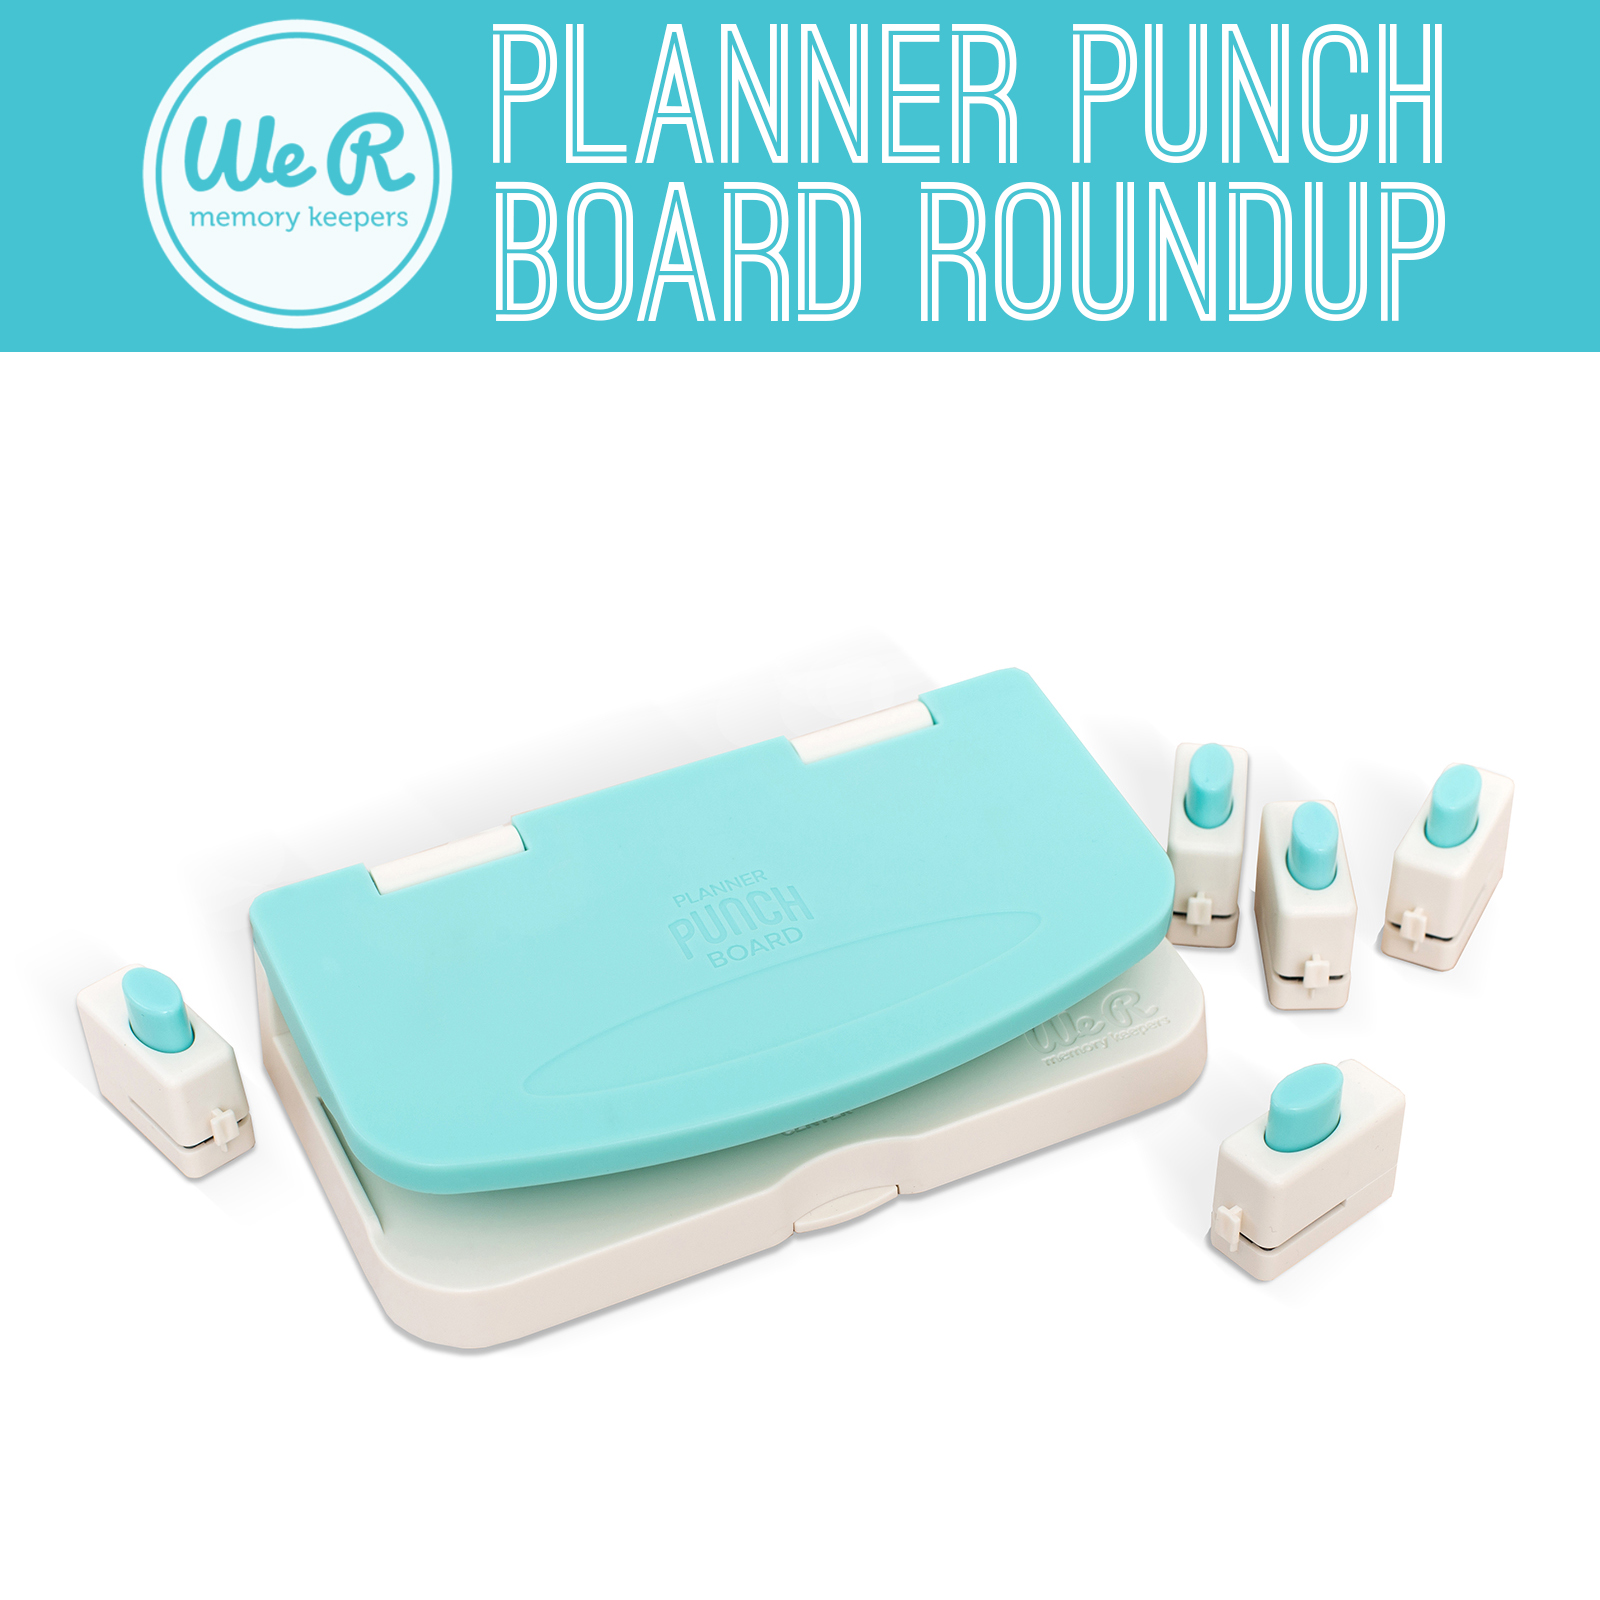 We R Memory Keepers Planner Punch Board Roundup